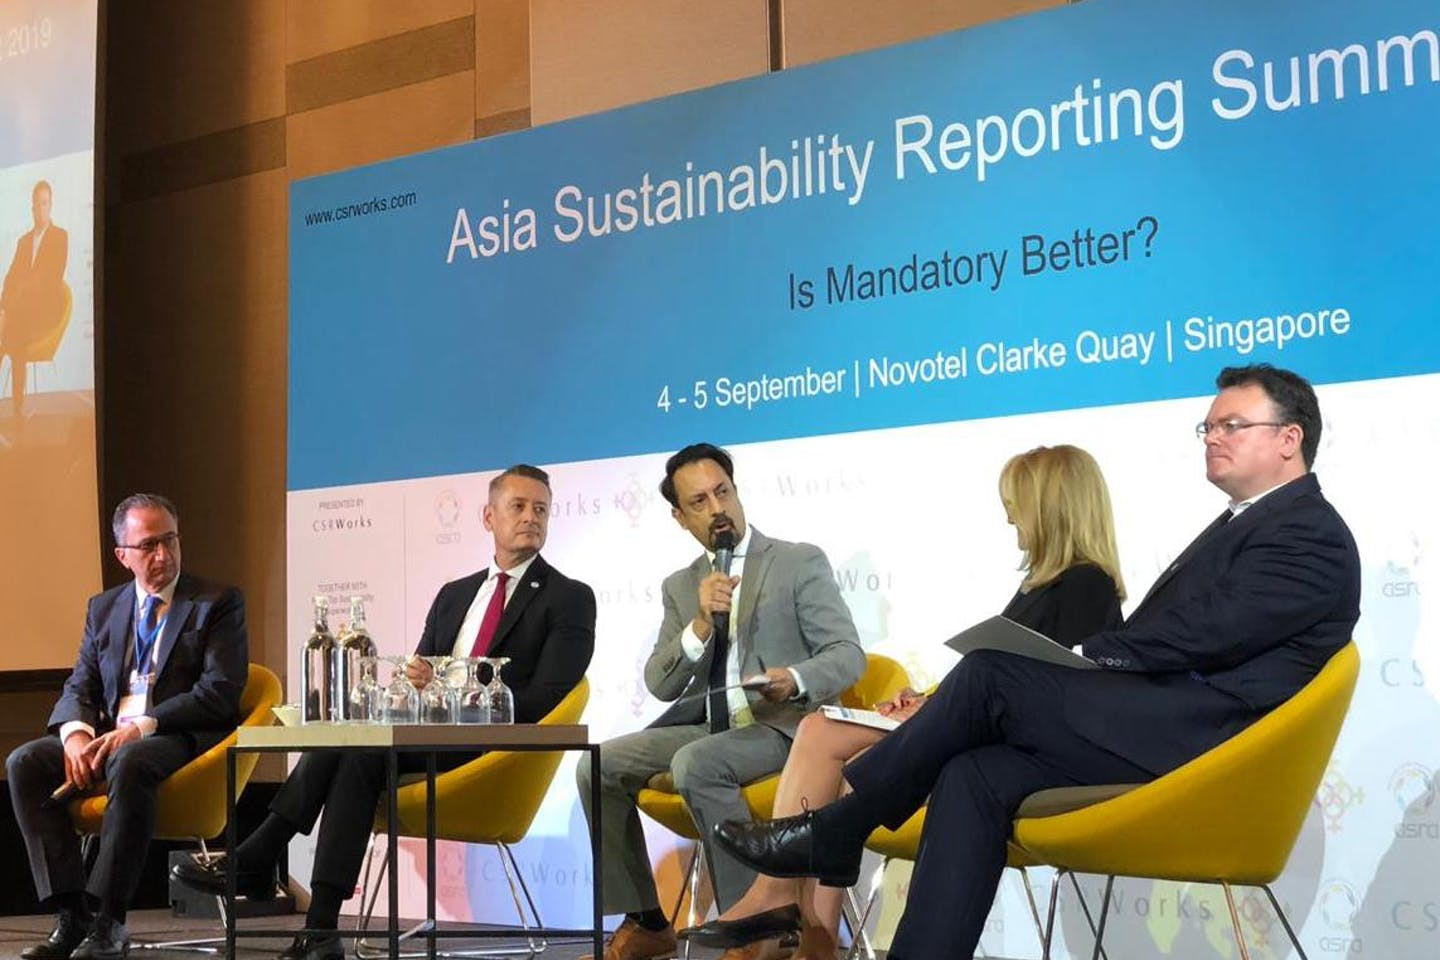 Panelists at the 2019 Asian Sustainability Reporting Summit